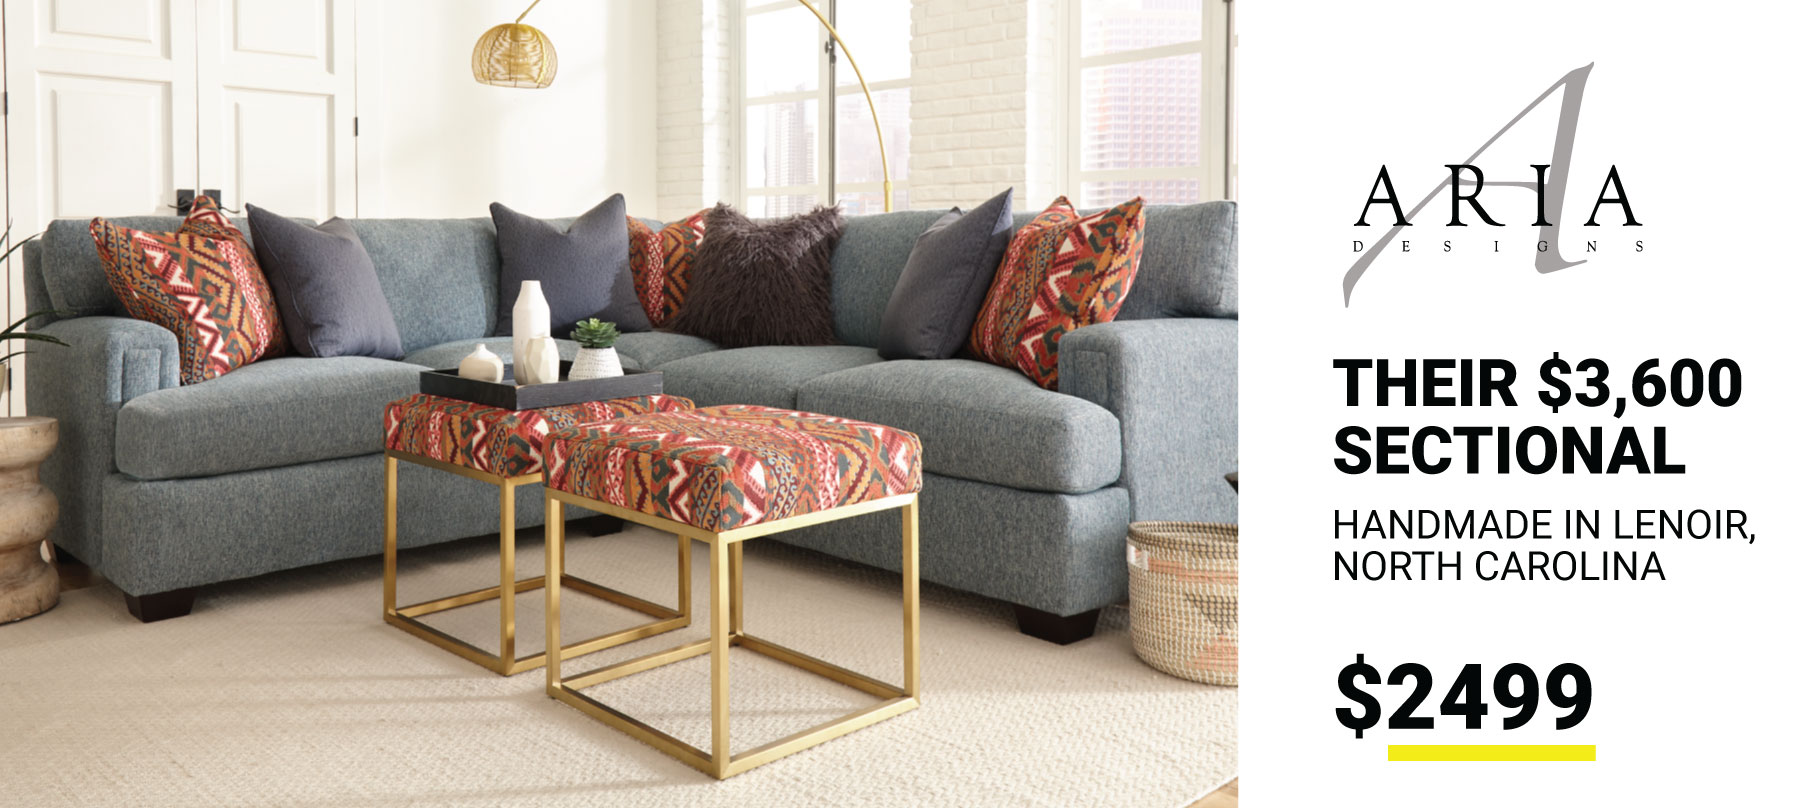 Aria - Their $3600 Sectional $2499